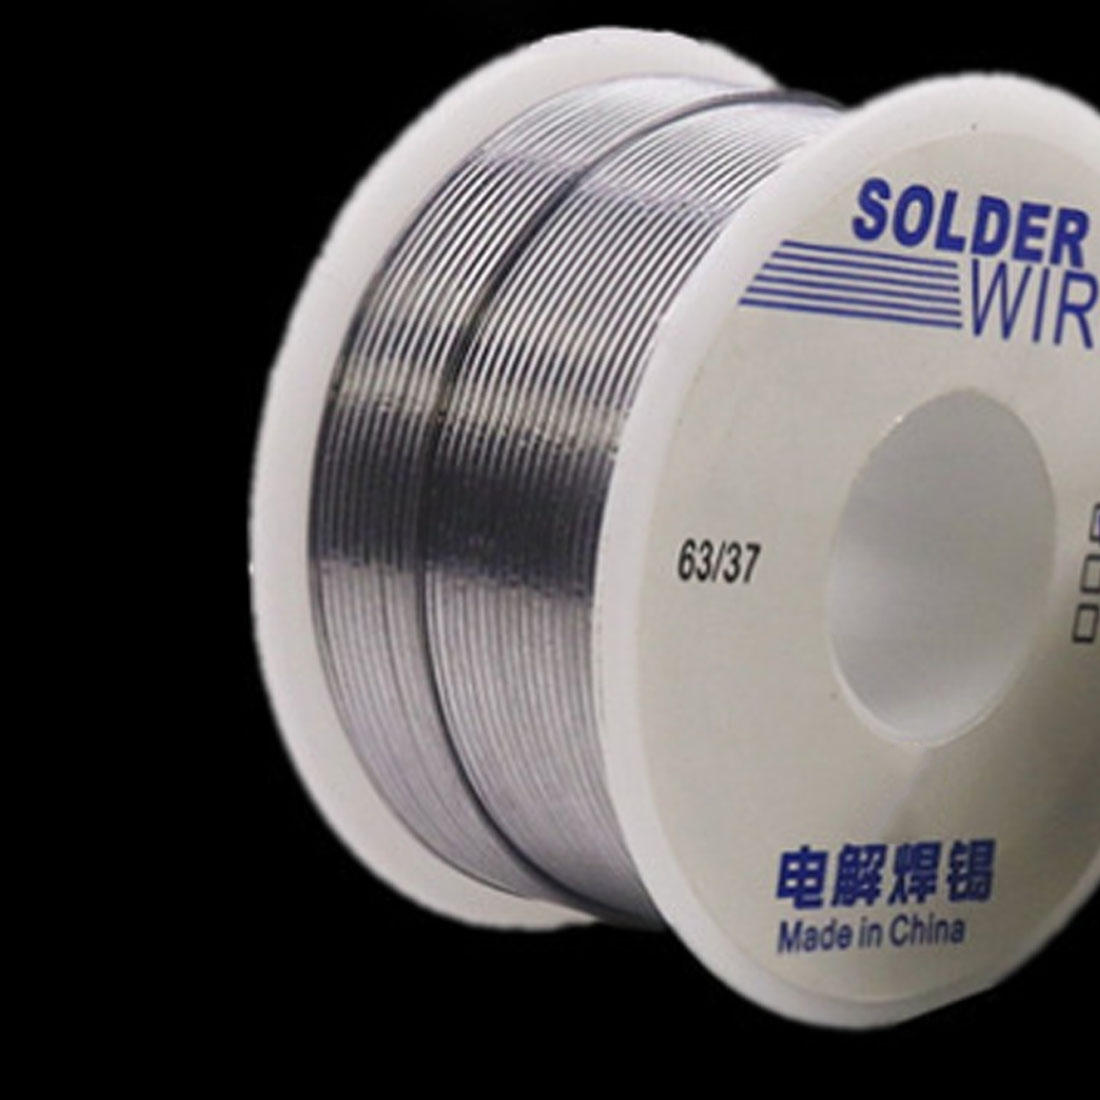 Silver Tin Lead Rosin Core Solder Wire 50g 1.0mm 0.8mm 63/37 2% Flux Reel Welding Line DIY Material Solder Soldering Wire Roll